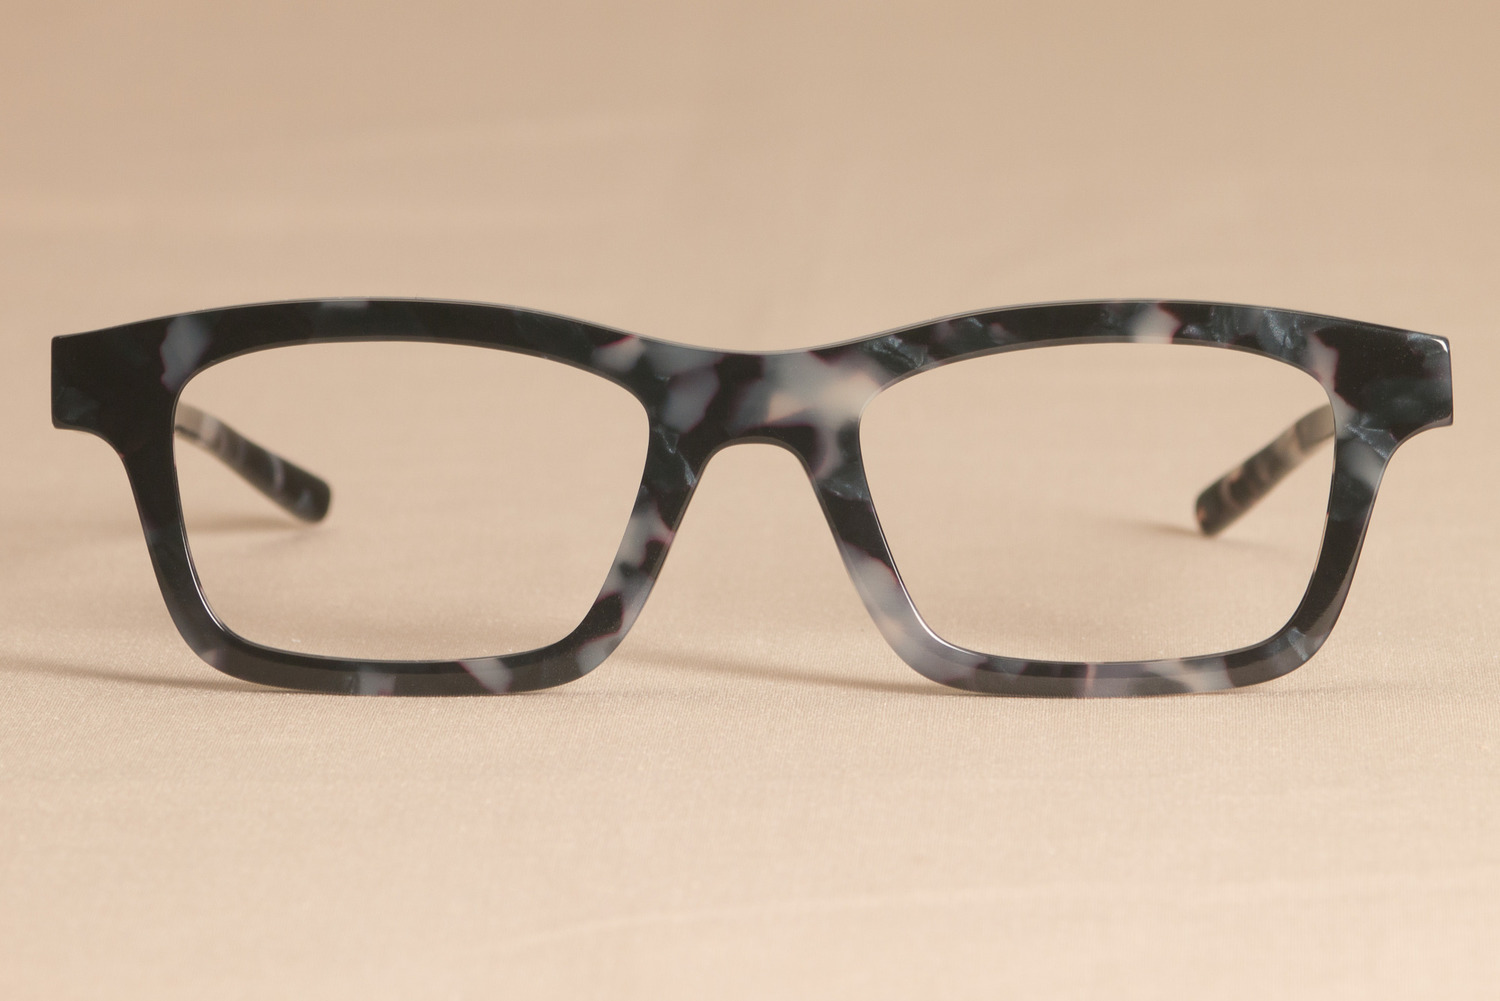 Indivijual-Custom-Glasses-38.jpg